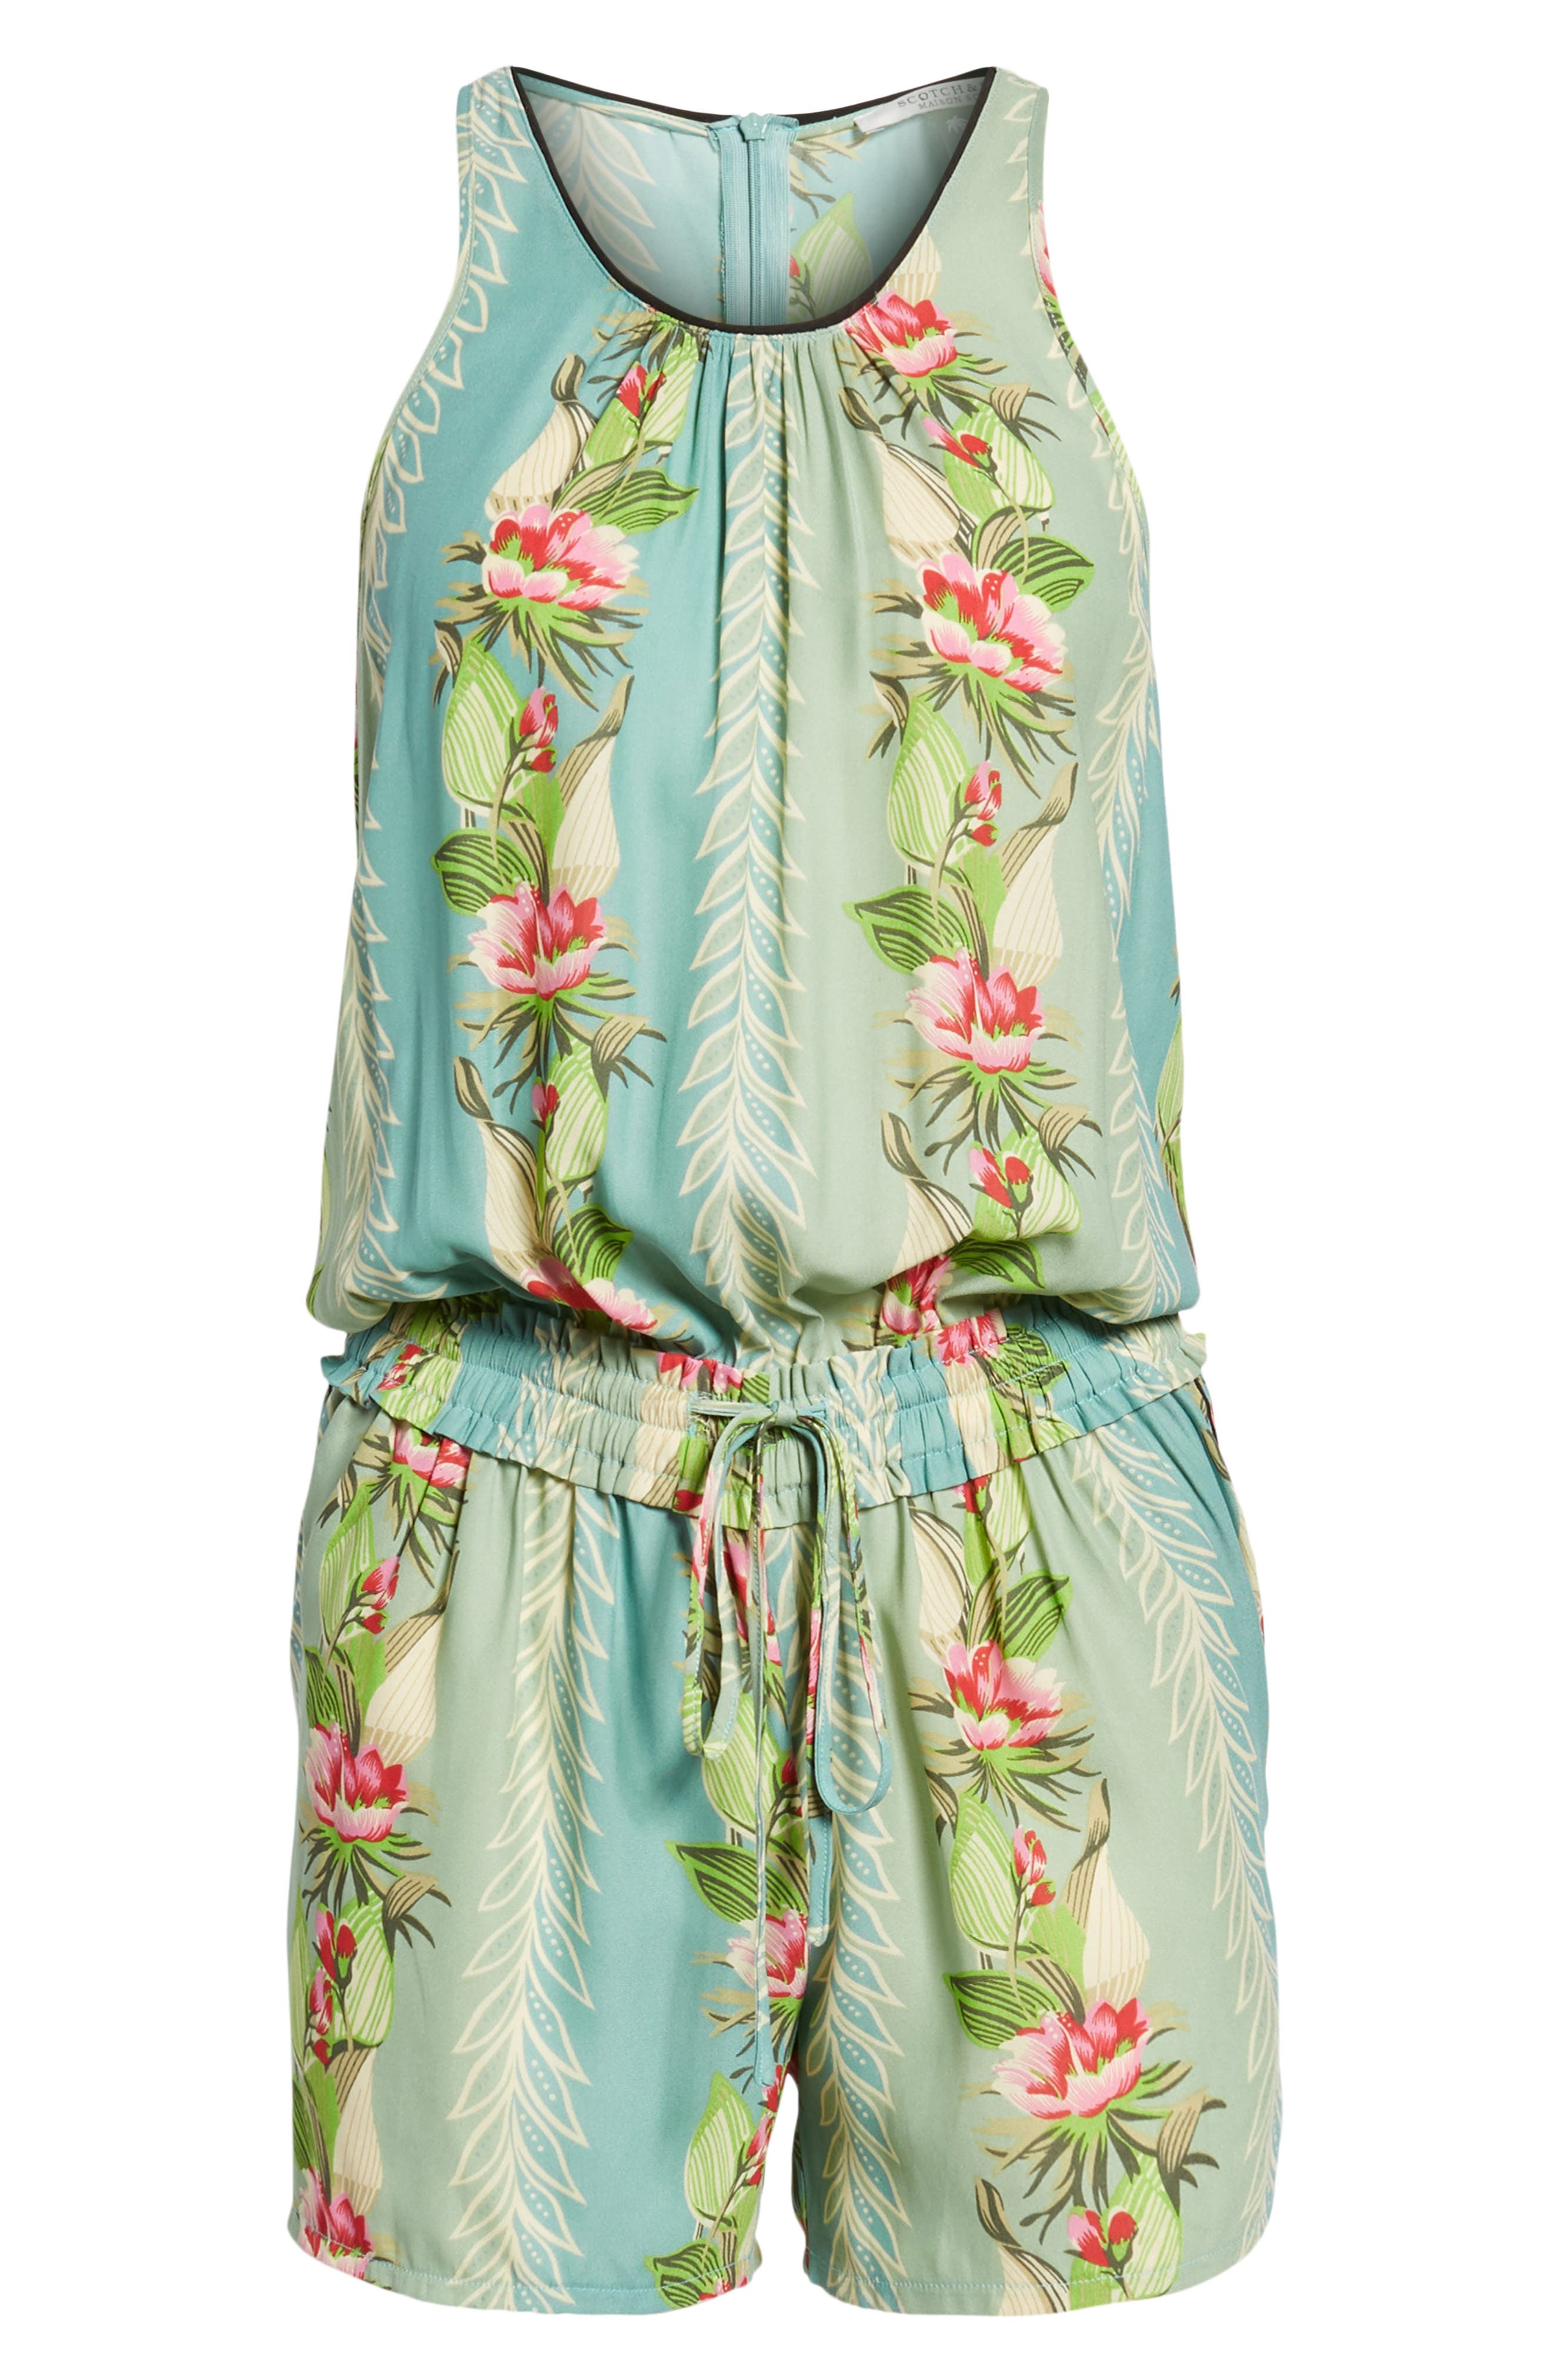 Print All in One Romper,                             Alternate thumbnail 6, color,                             440